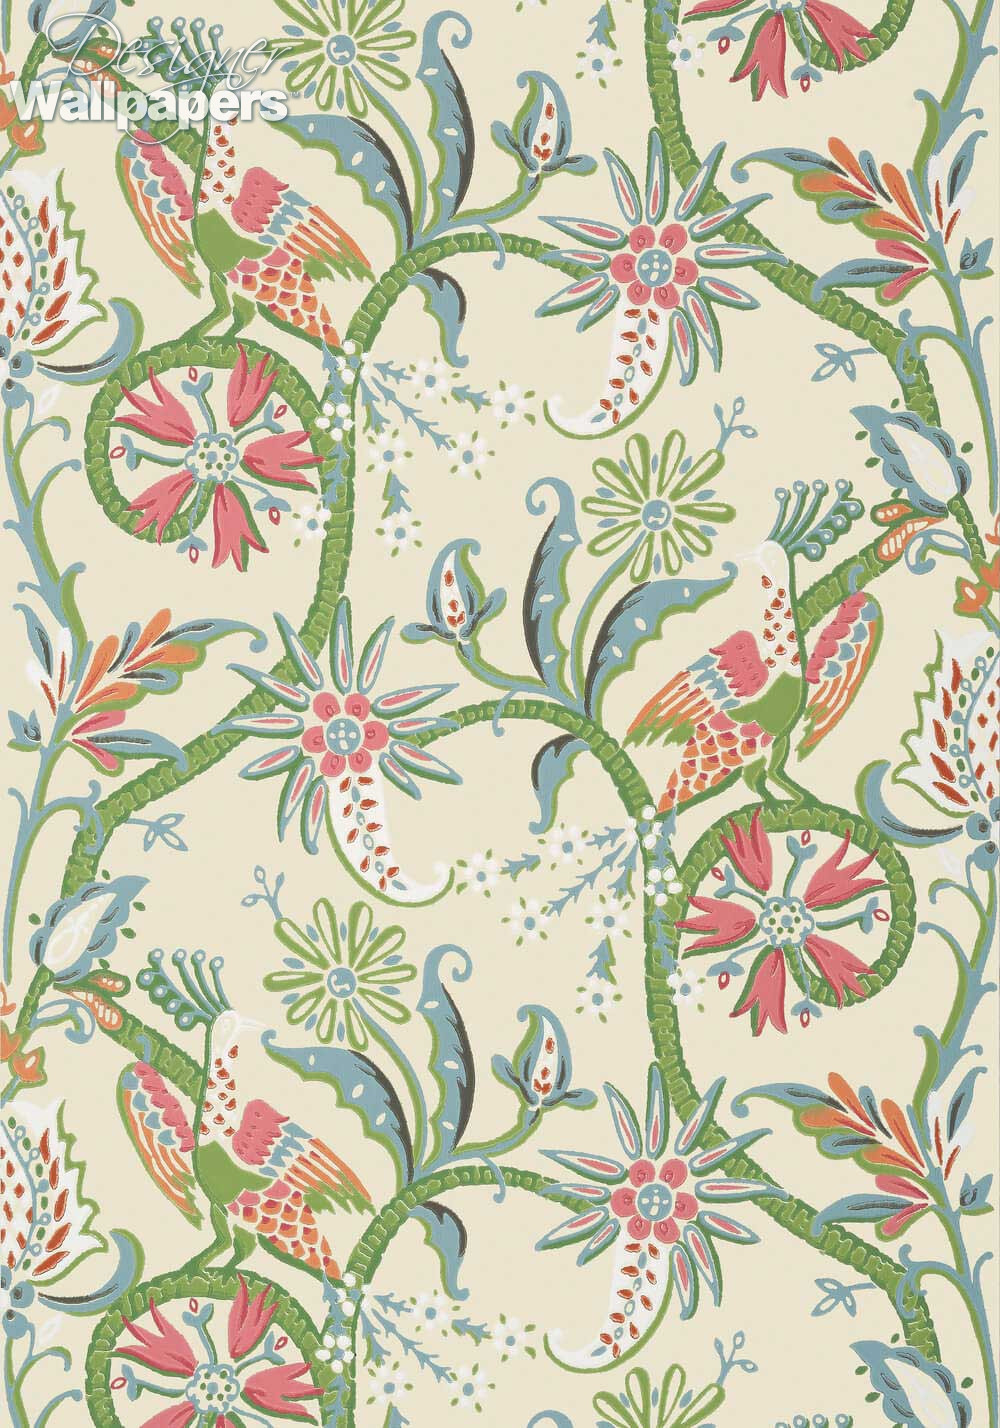 Thibaut wallpapers peacock garden next day delivery for Designer wallpaper uk